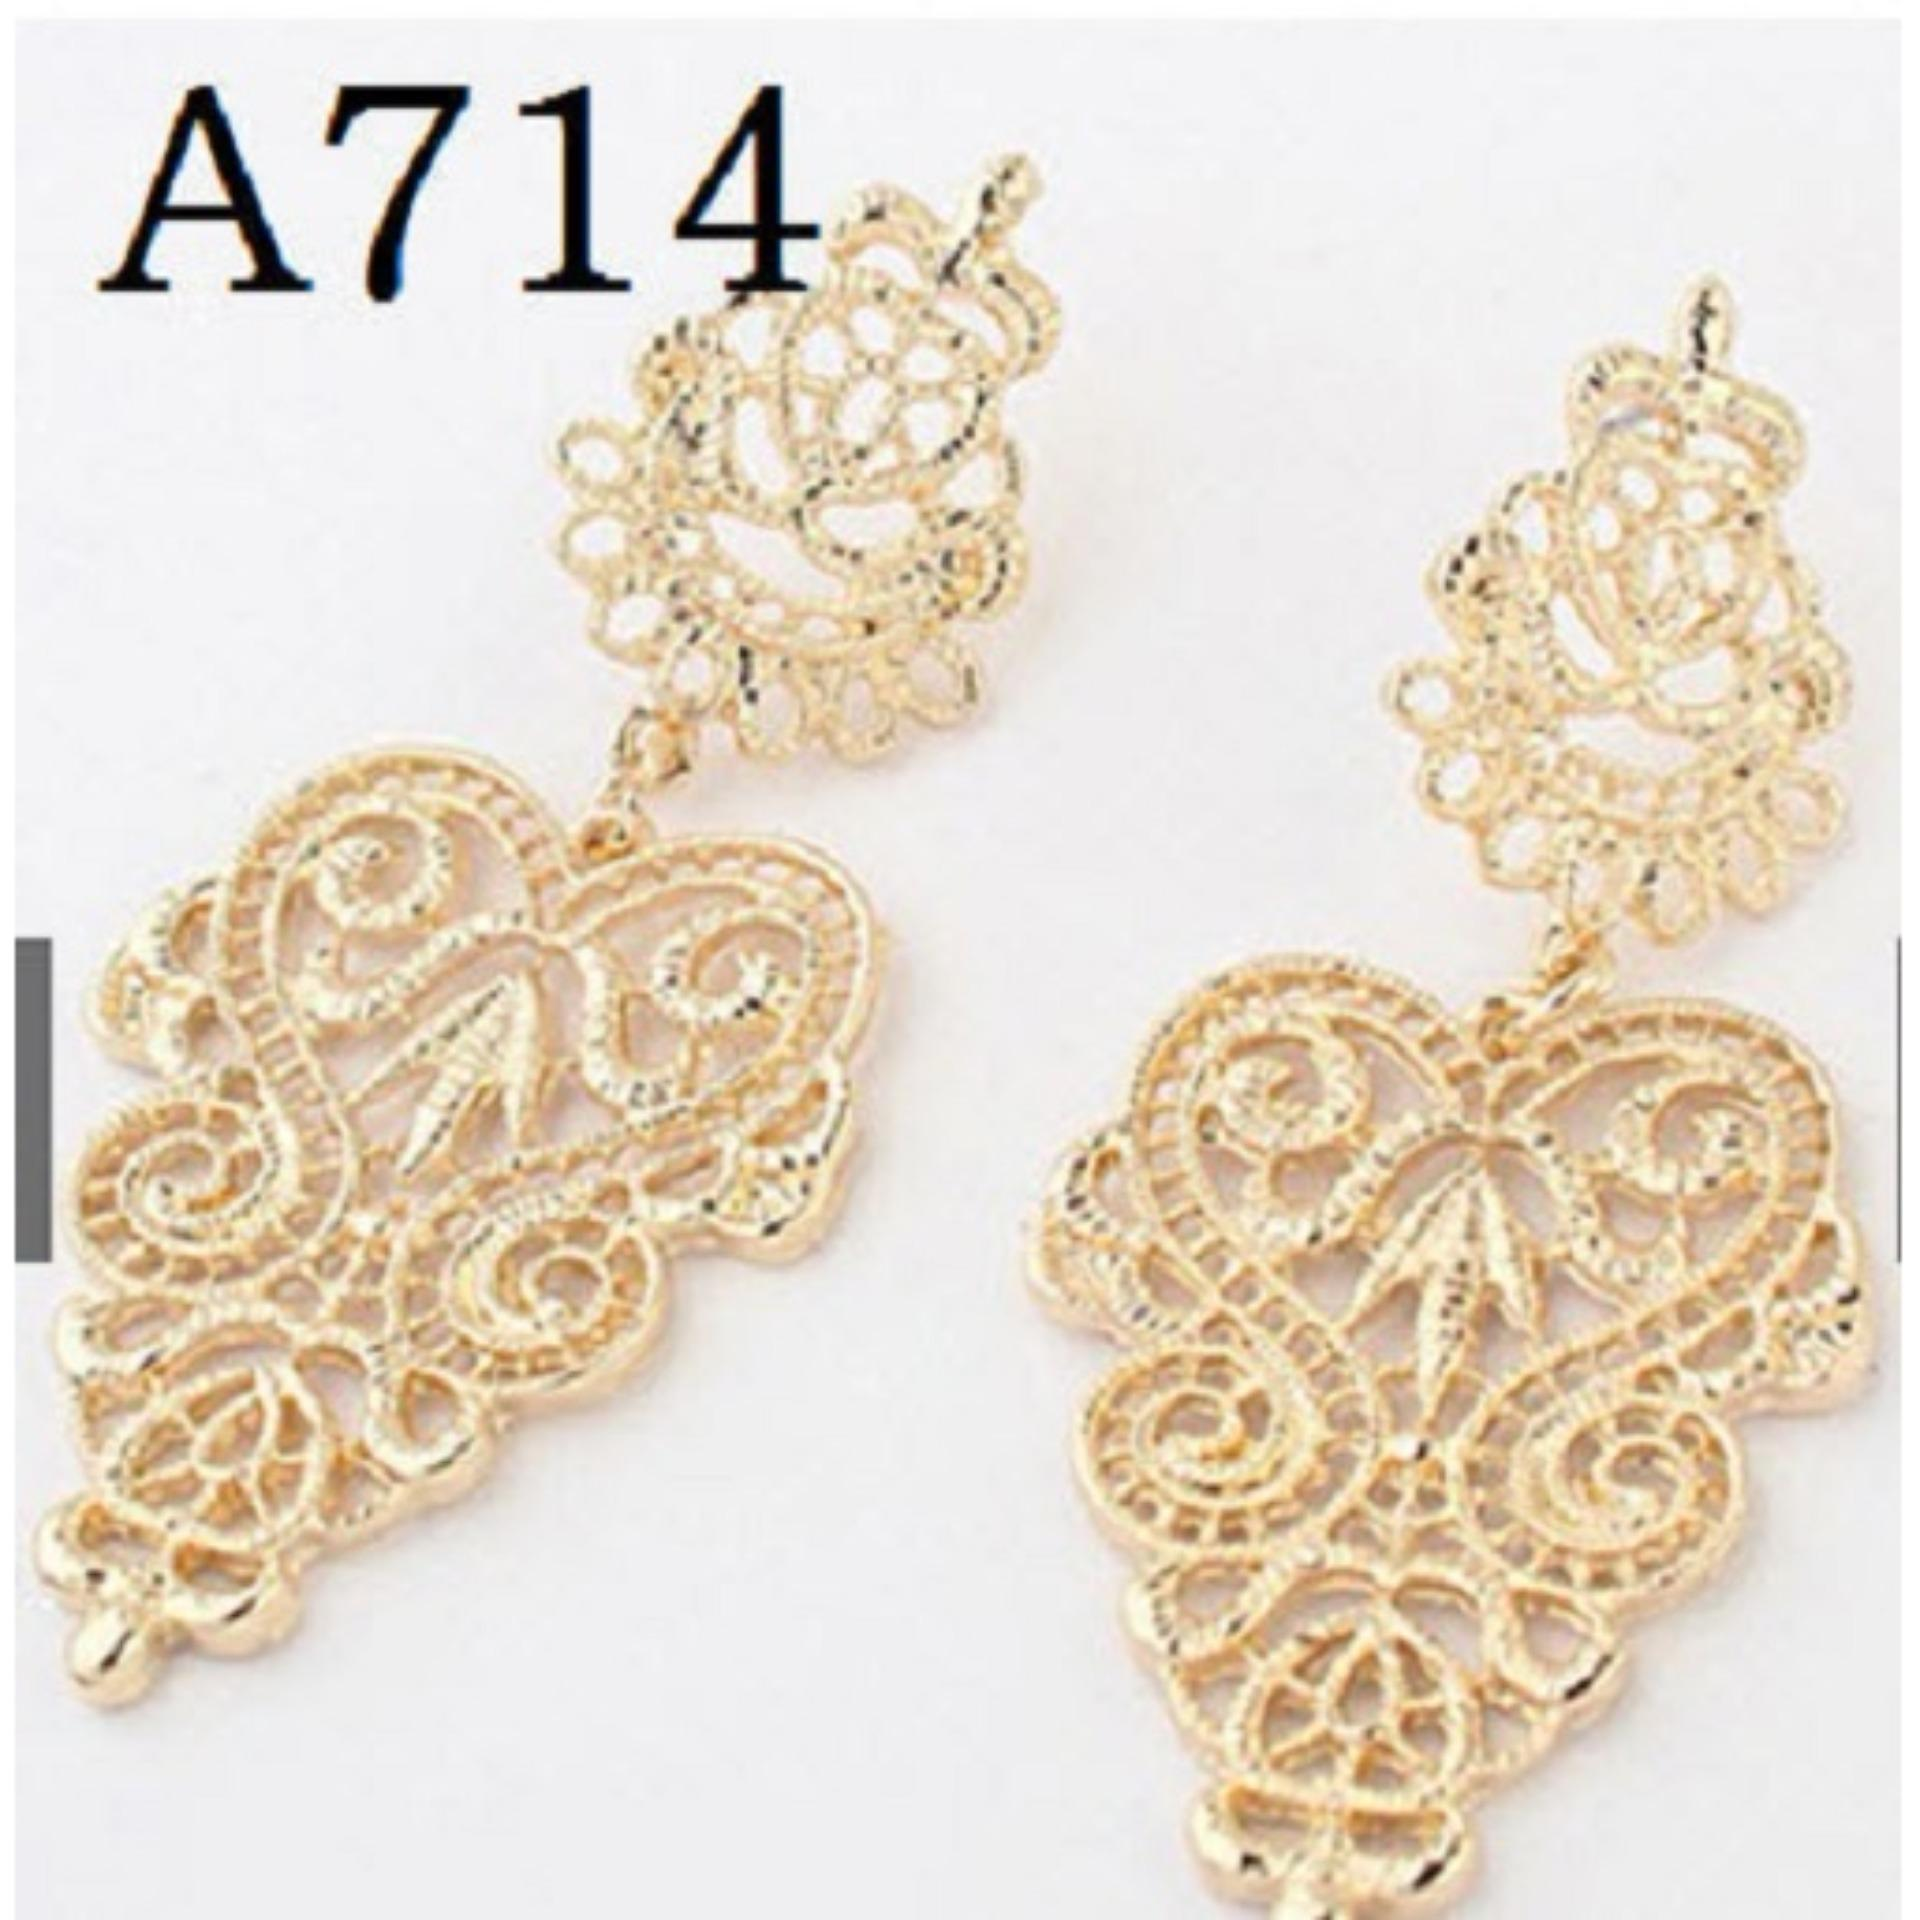 Anting Korea (Jual Perhiasan Set Cincin Gelang Kalung Xuping)